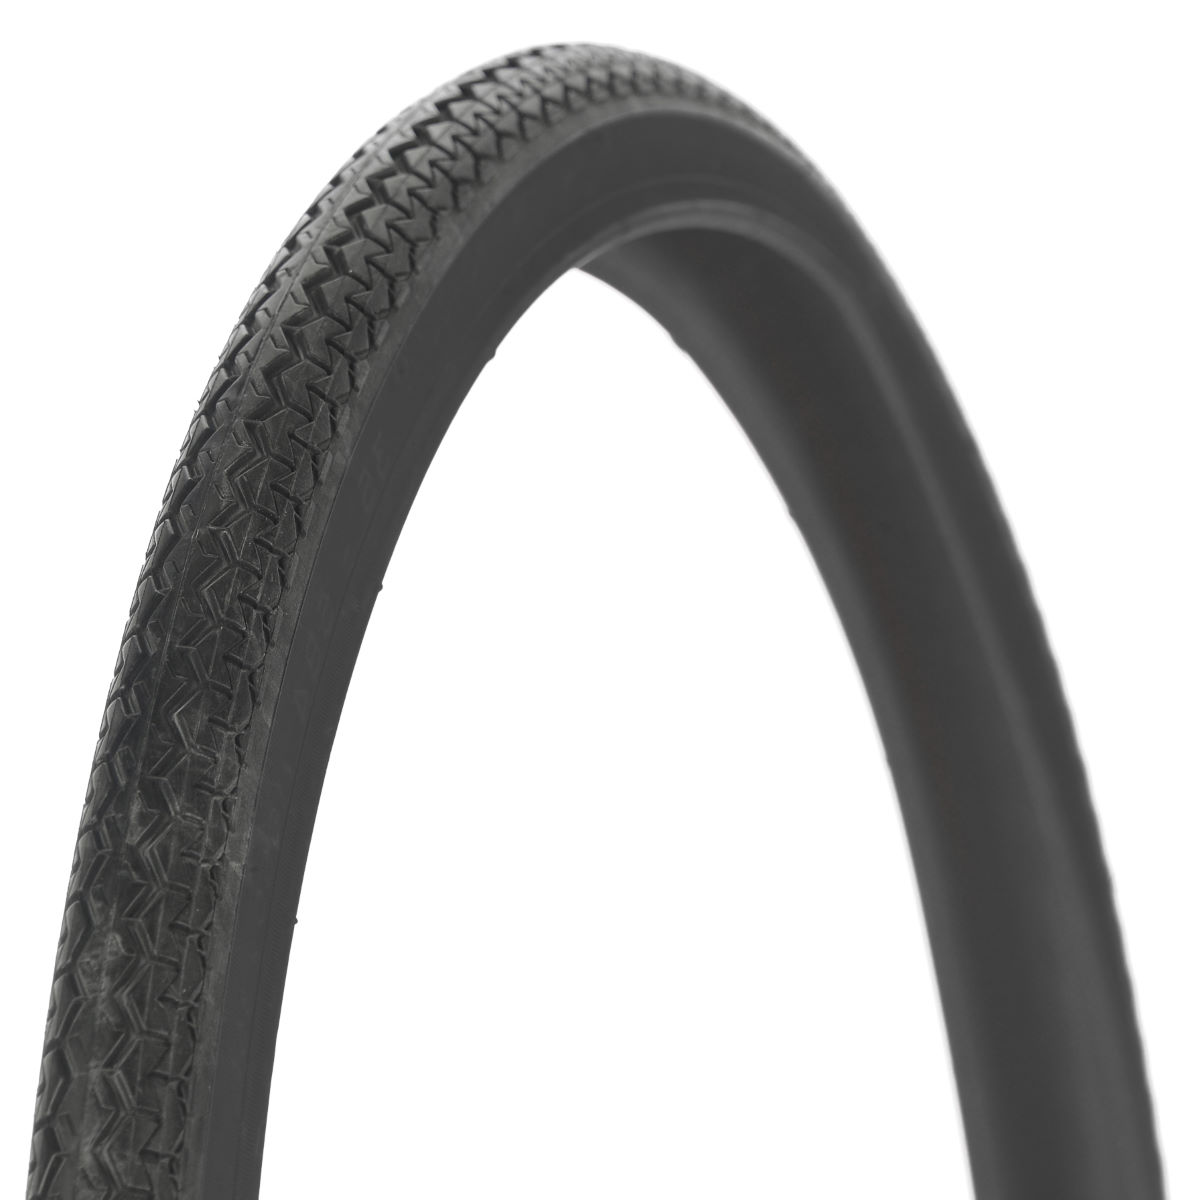 Pneu Michelin World Tour Bike - 26' 1.3/8' Wire Bead Noir